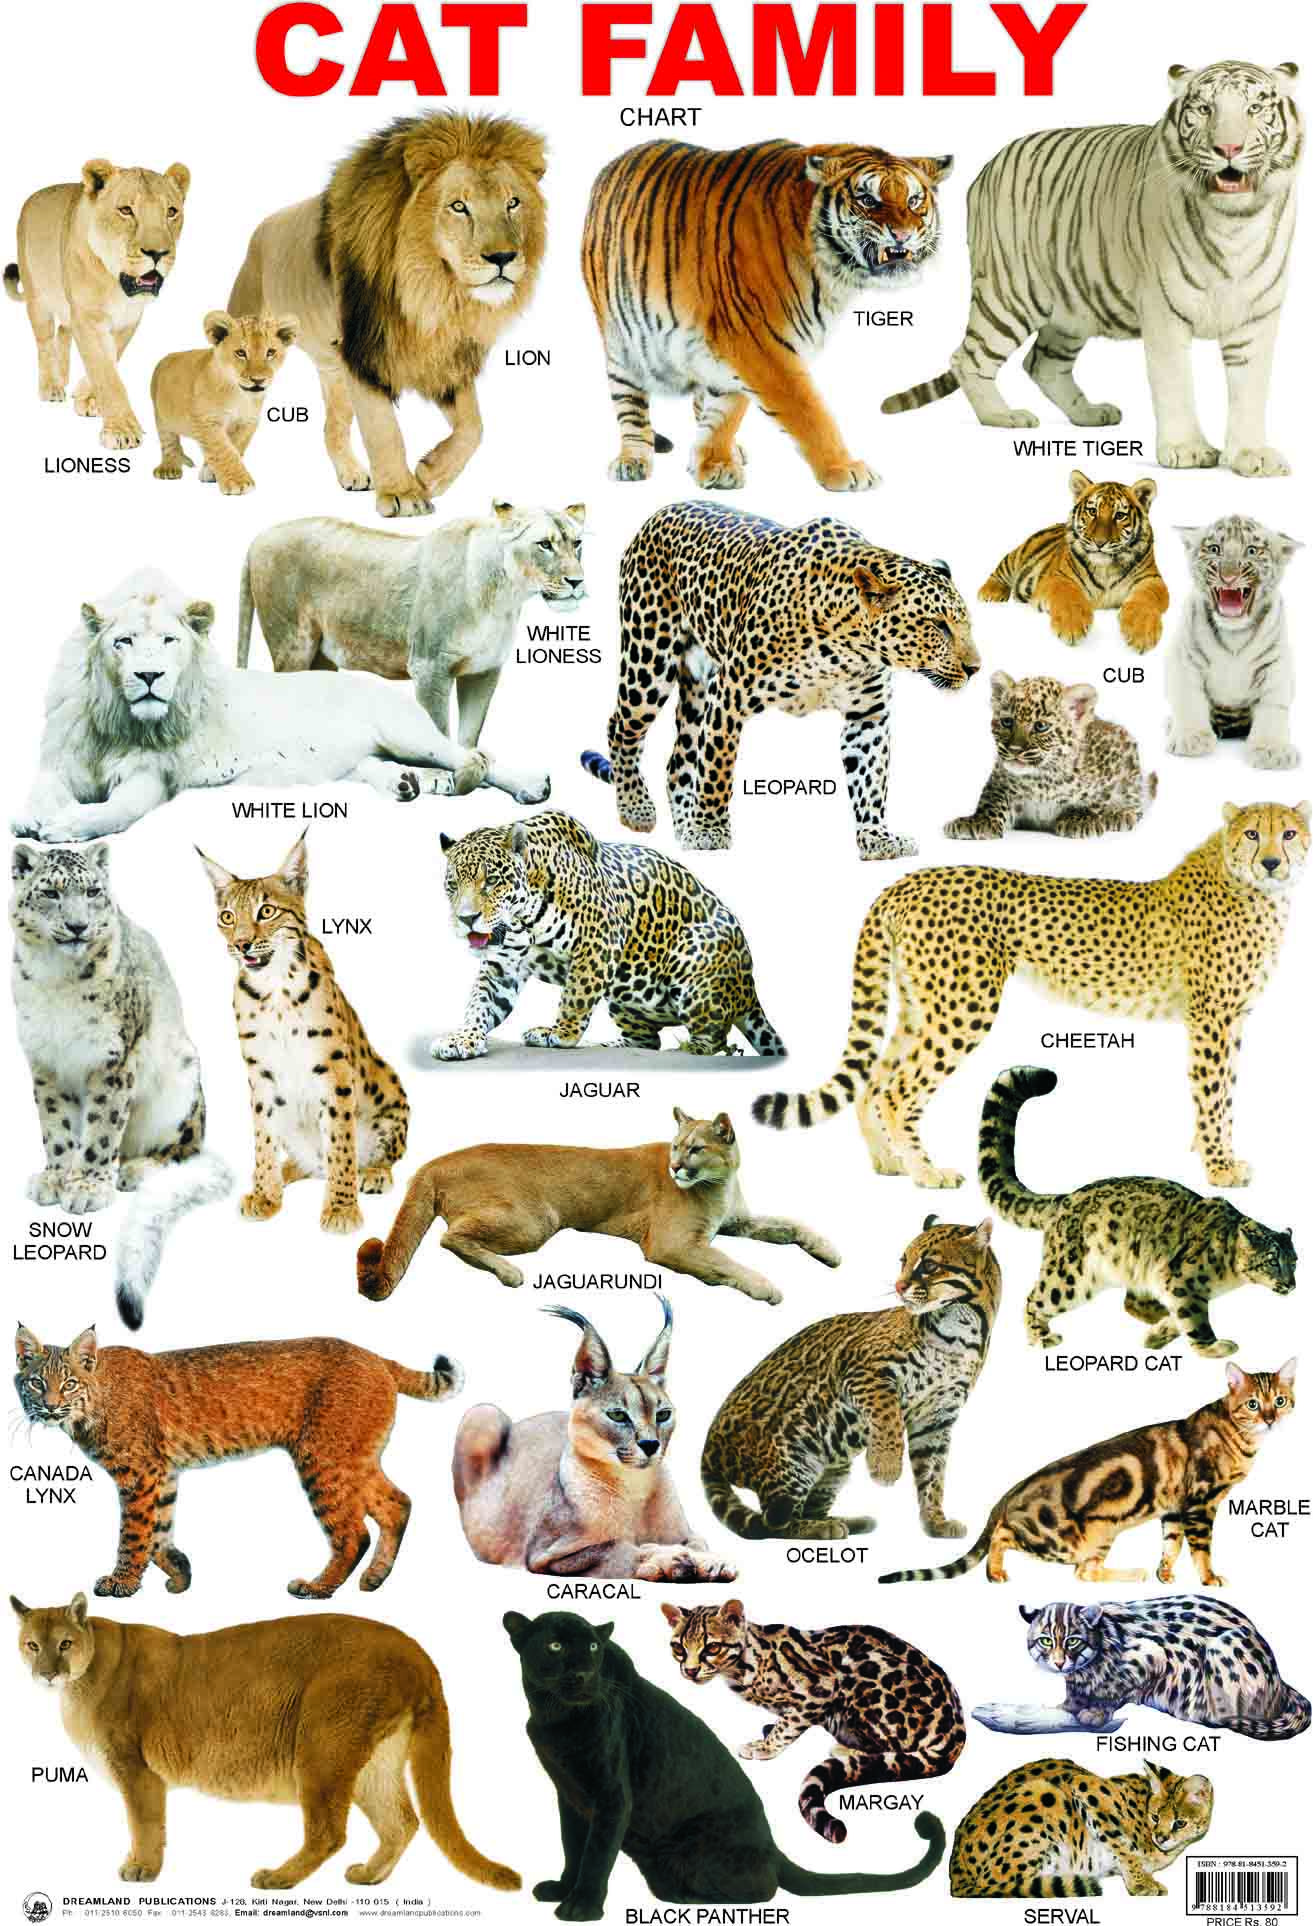 science Cat Family Cat breeds chart, Animals wild, Animals